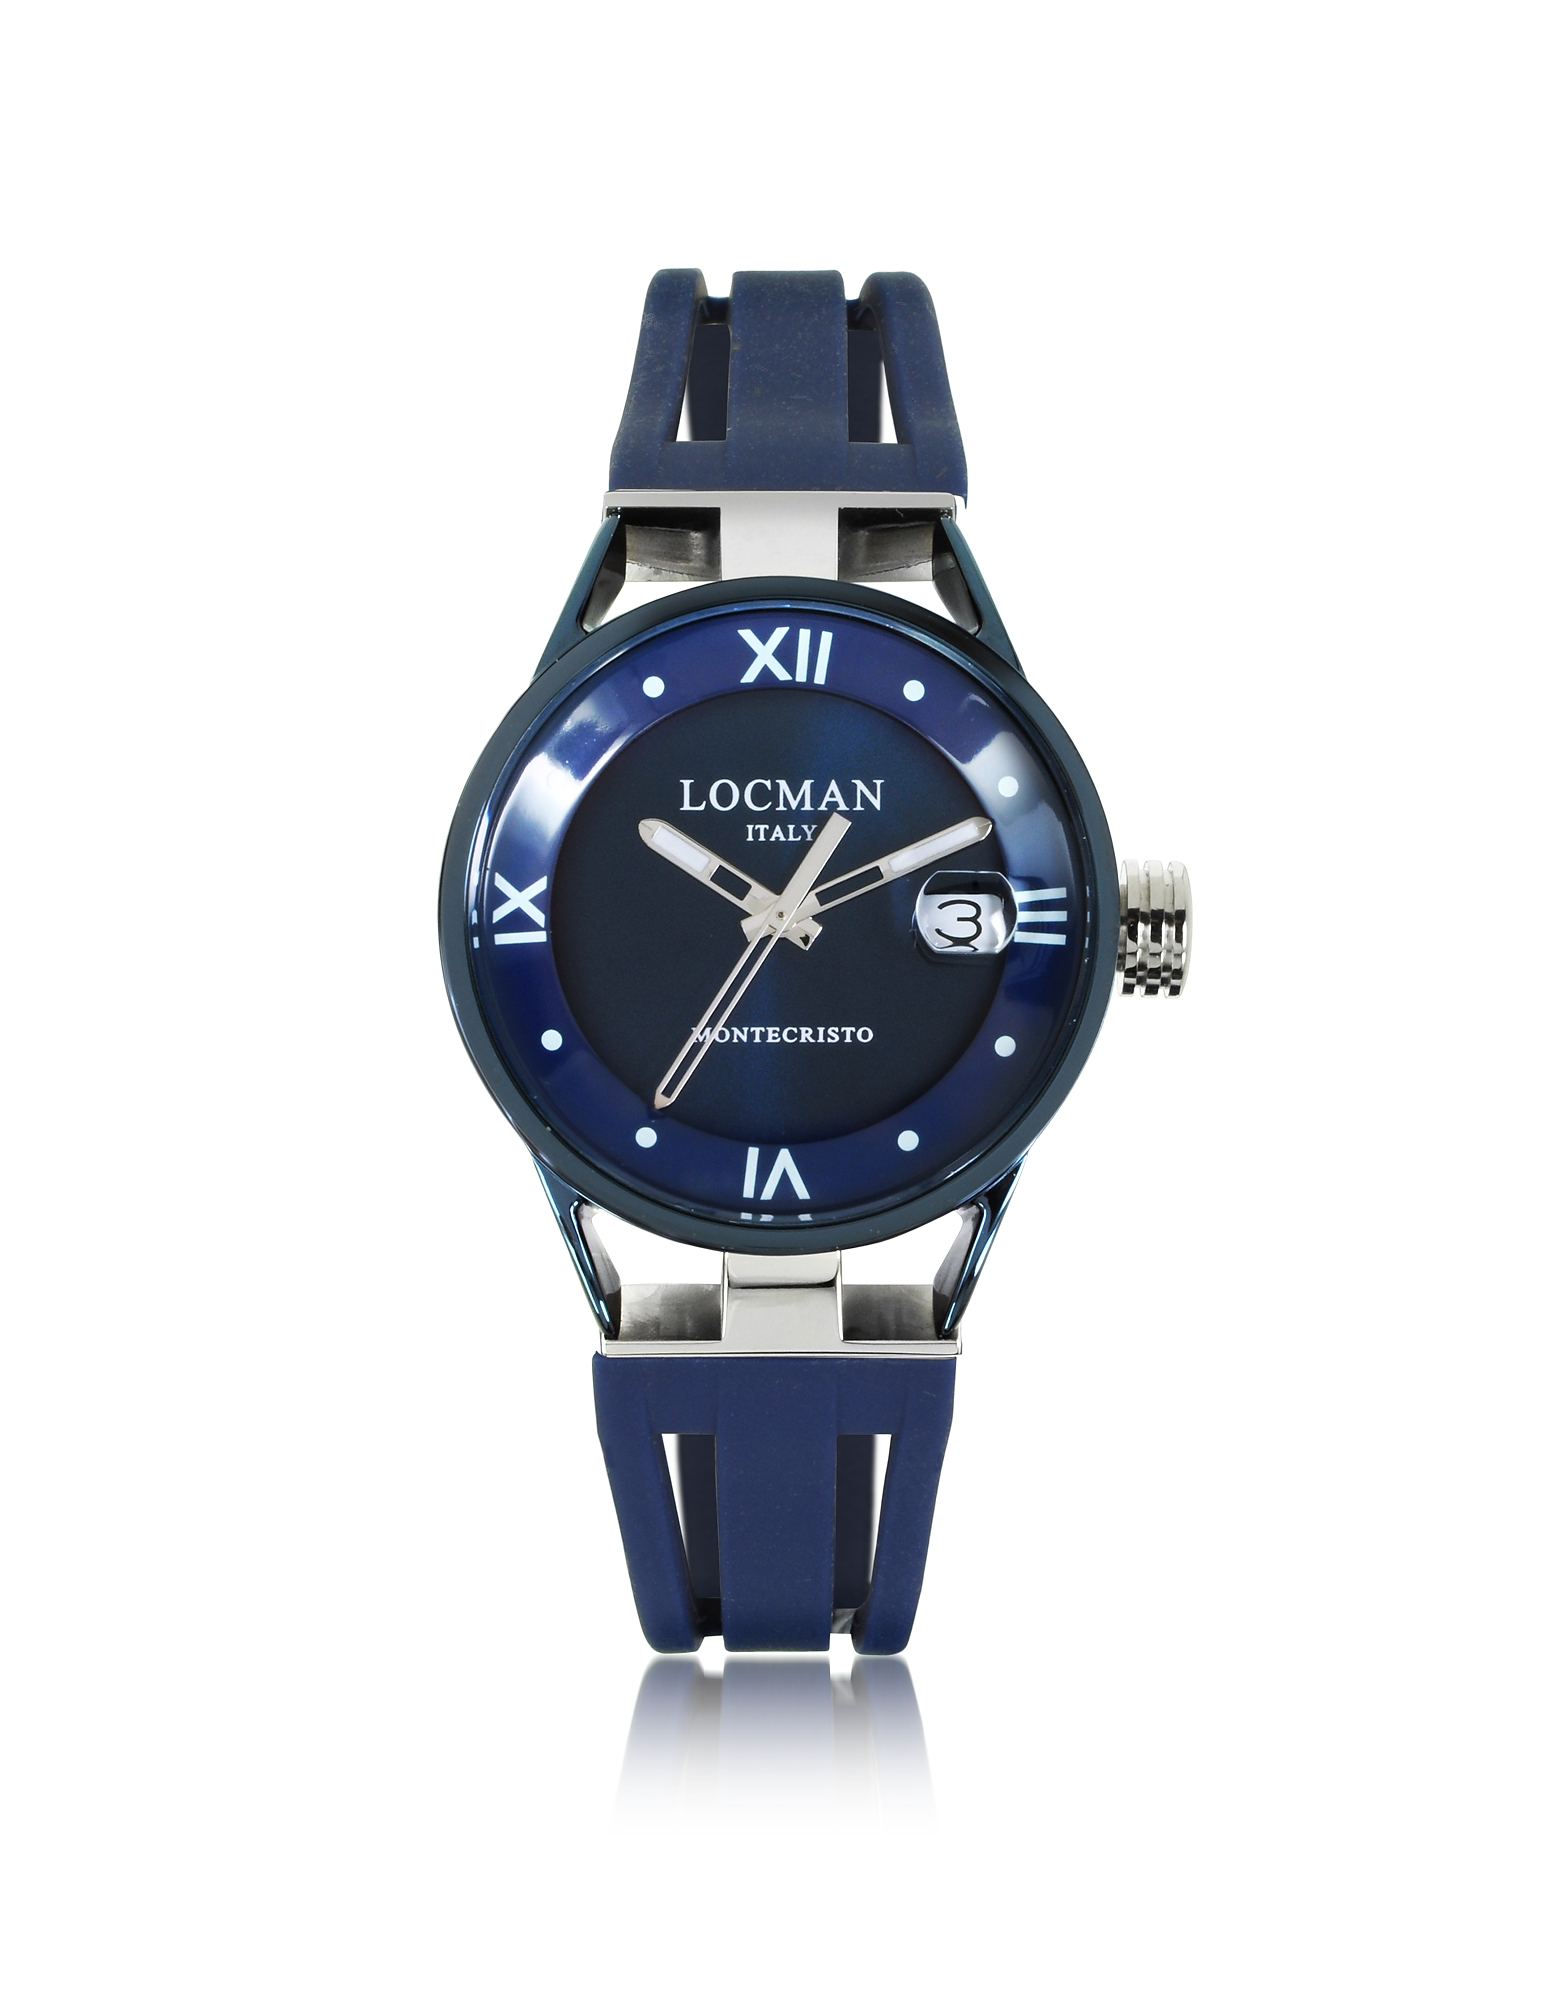 Locman Women's Watches, Montecristo Stainless Steel and Titanium Women's Watch w/Silicone Strap